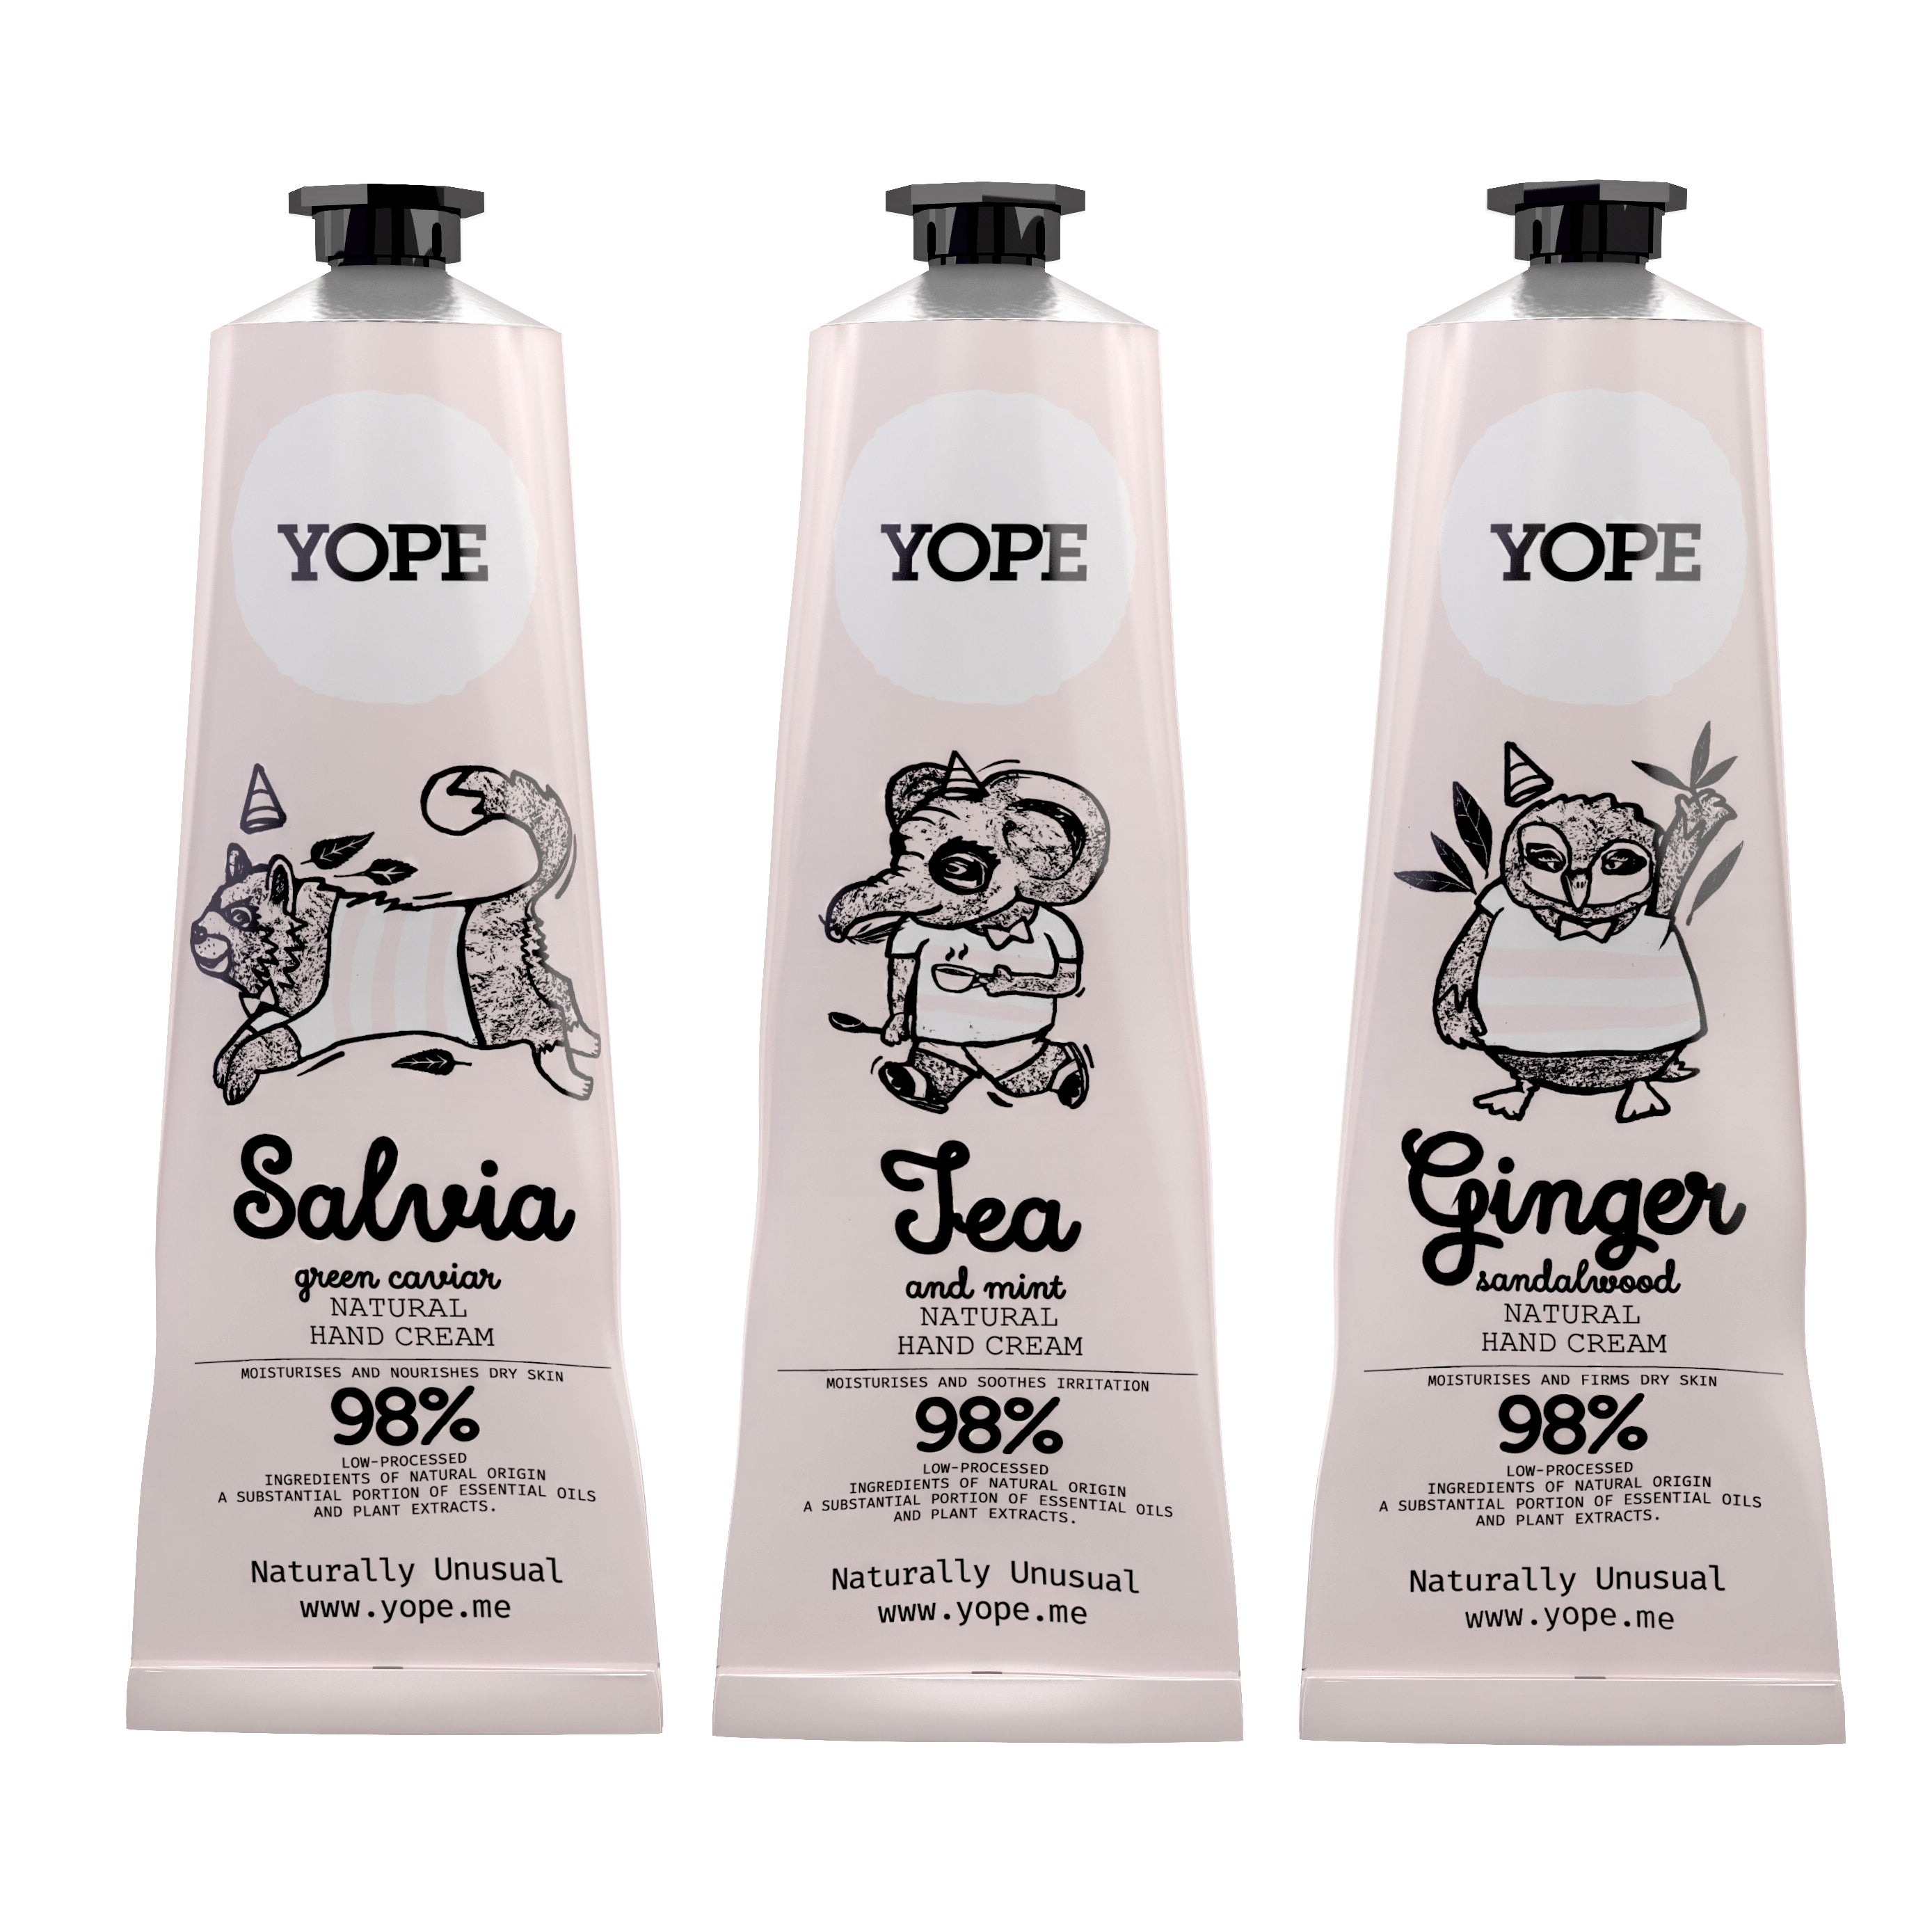 YOPE Hand Cream Ginger & Sandalwood / YOPE 薑丶檀香護手霜 - Xavi Soap